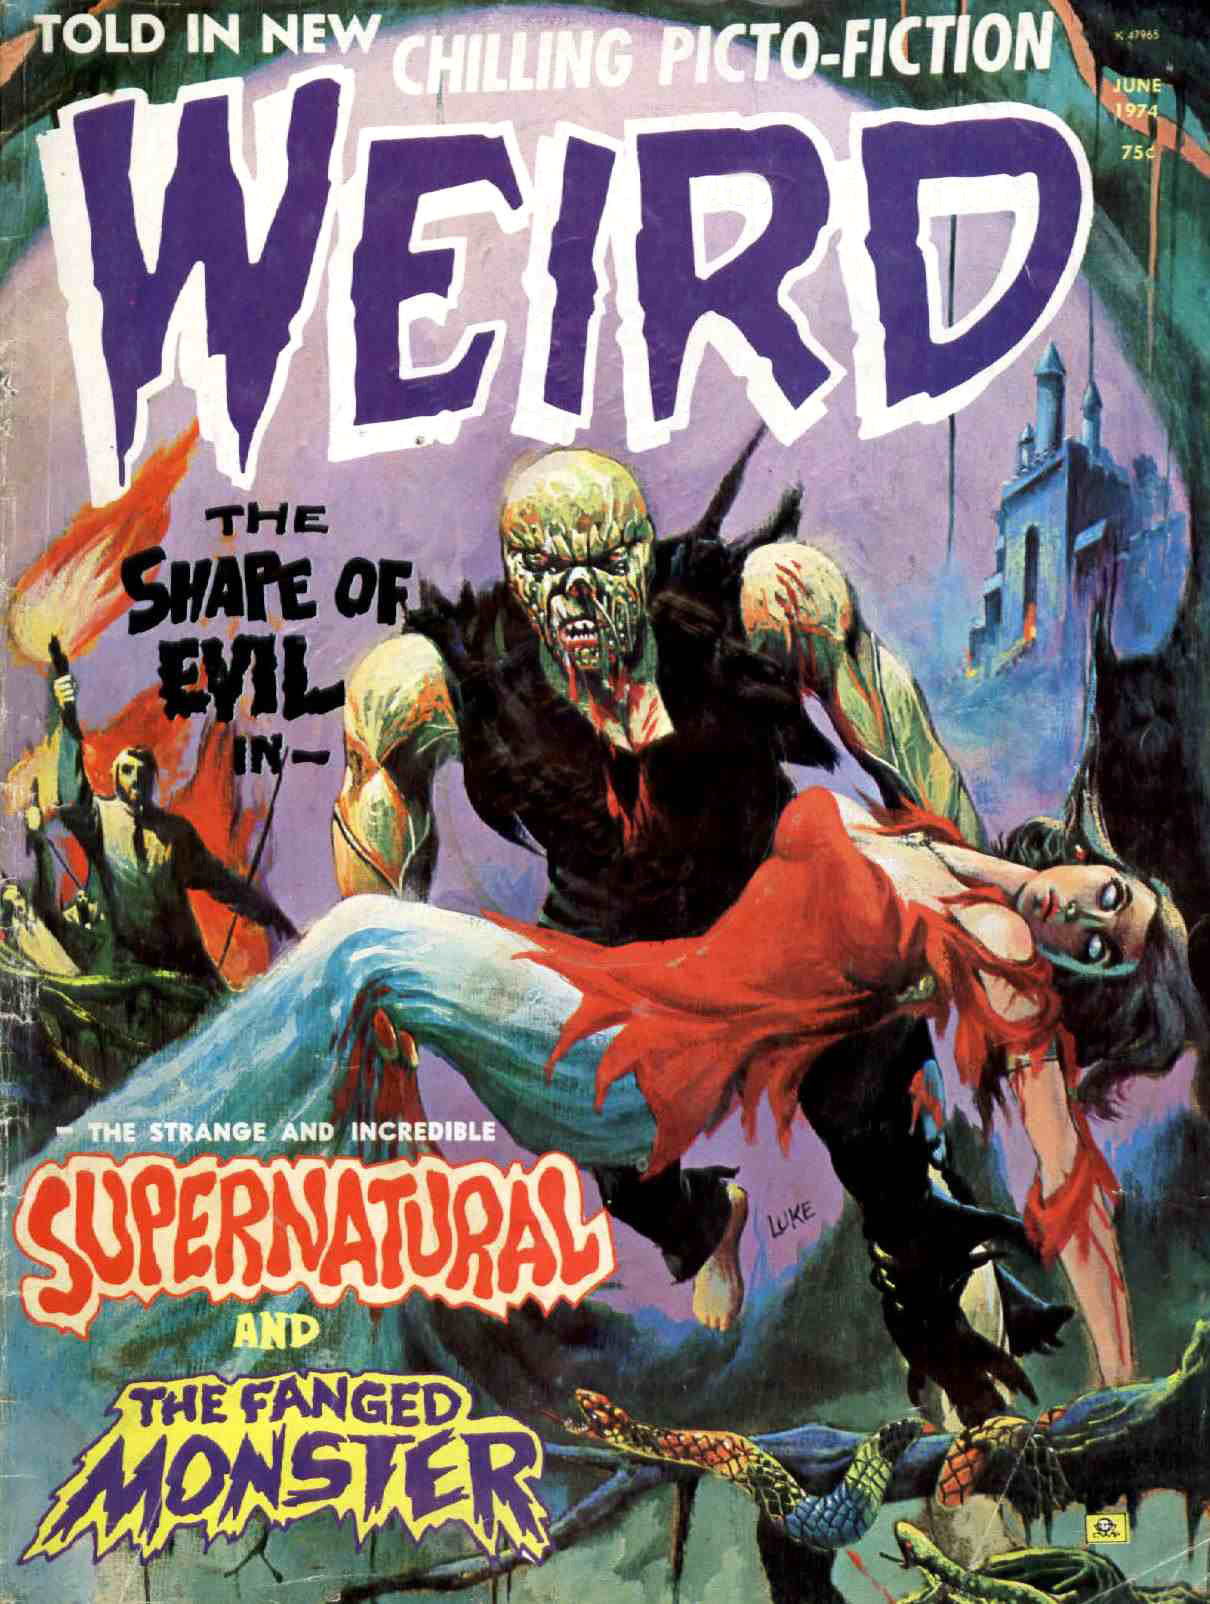 Weird Vol. 08 #3 (Eerie Publications, 1974)